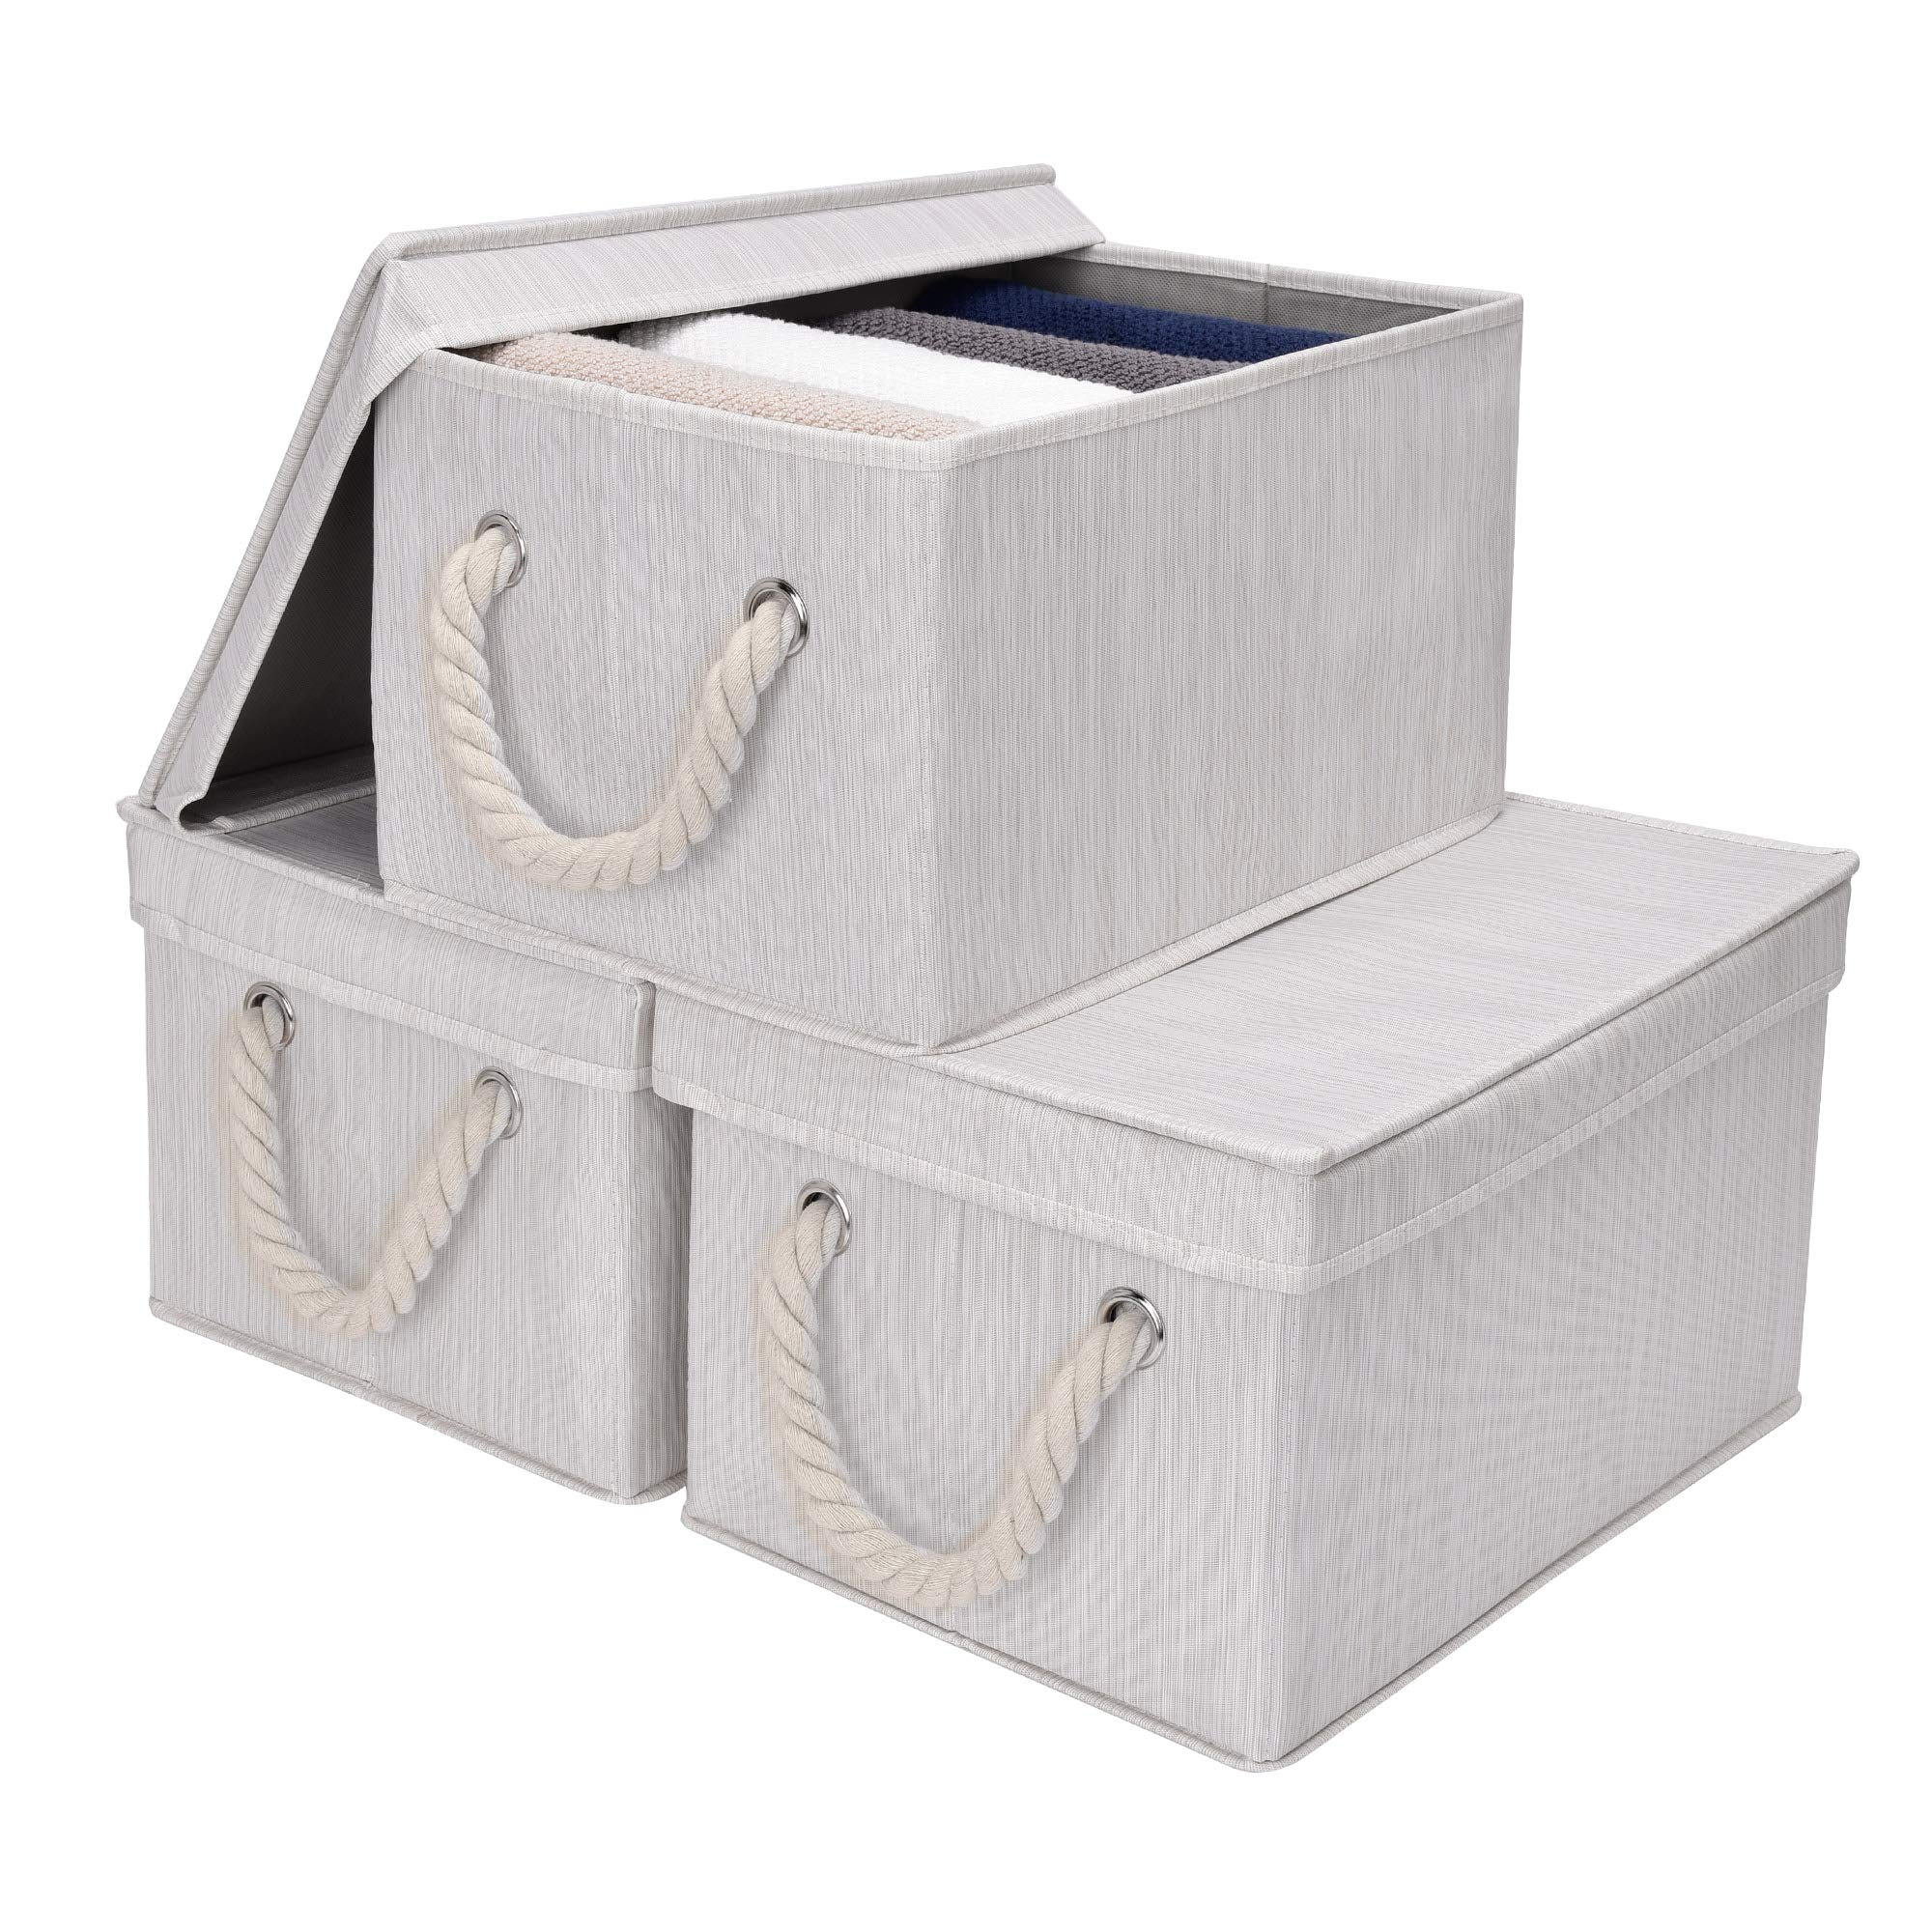 StorageWorks Storage Bins with Lids, Decorative Storage Boxes with Lids and Cotton Rope Handles, Mixing of Beige, White & Ivory, Large, 3-Pack by StorageWorks